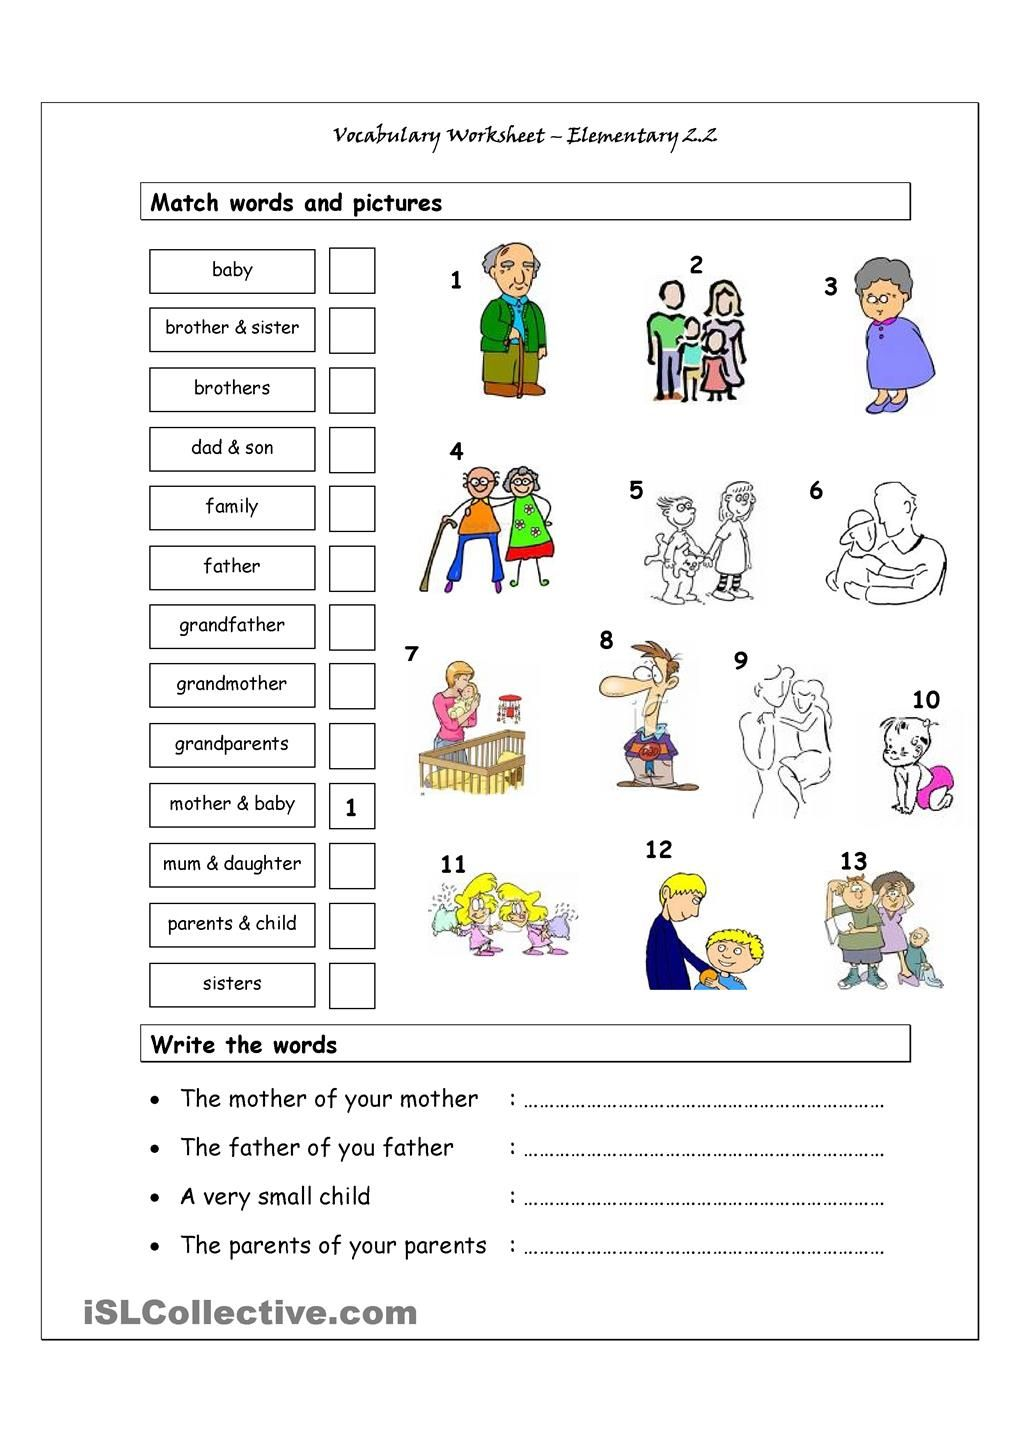 Vocabulary Matching Worksheet Elementary 2.2 (Family